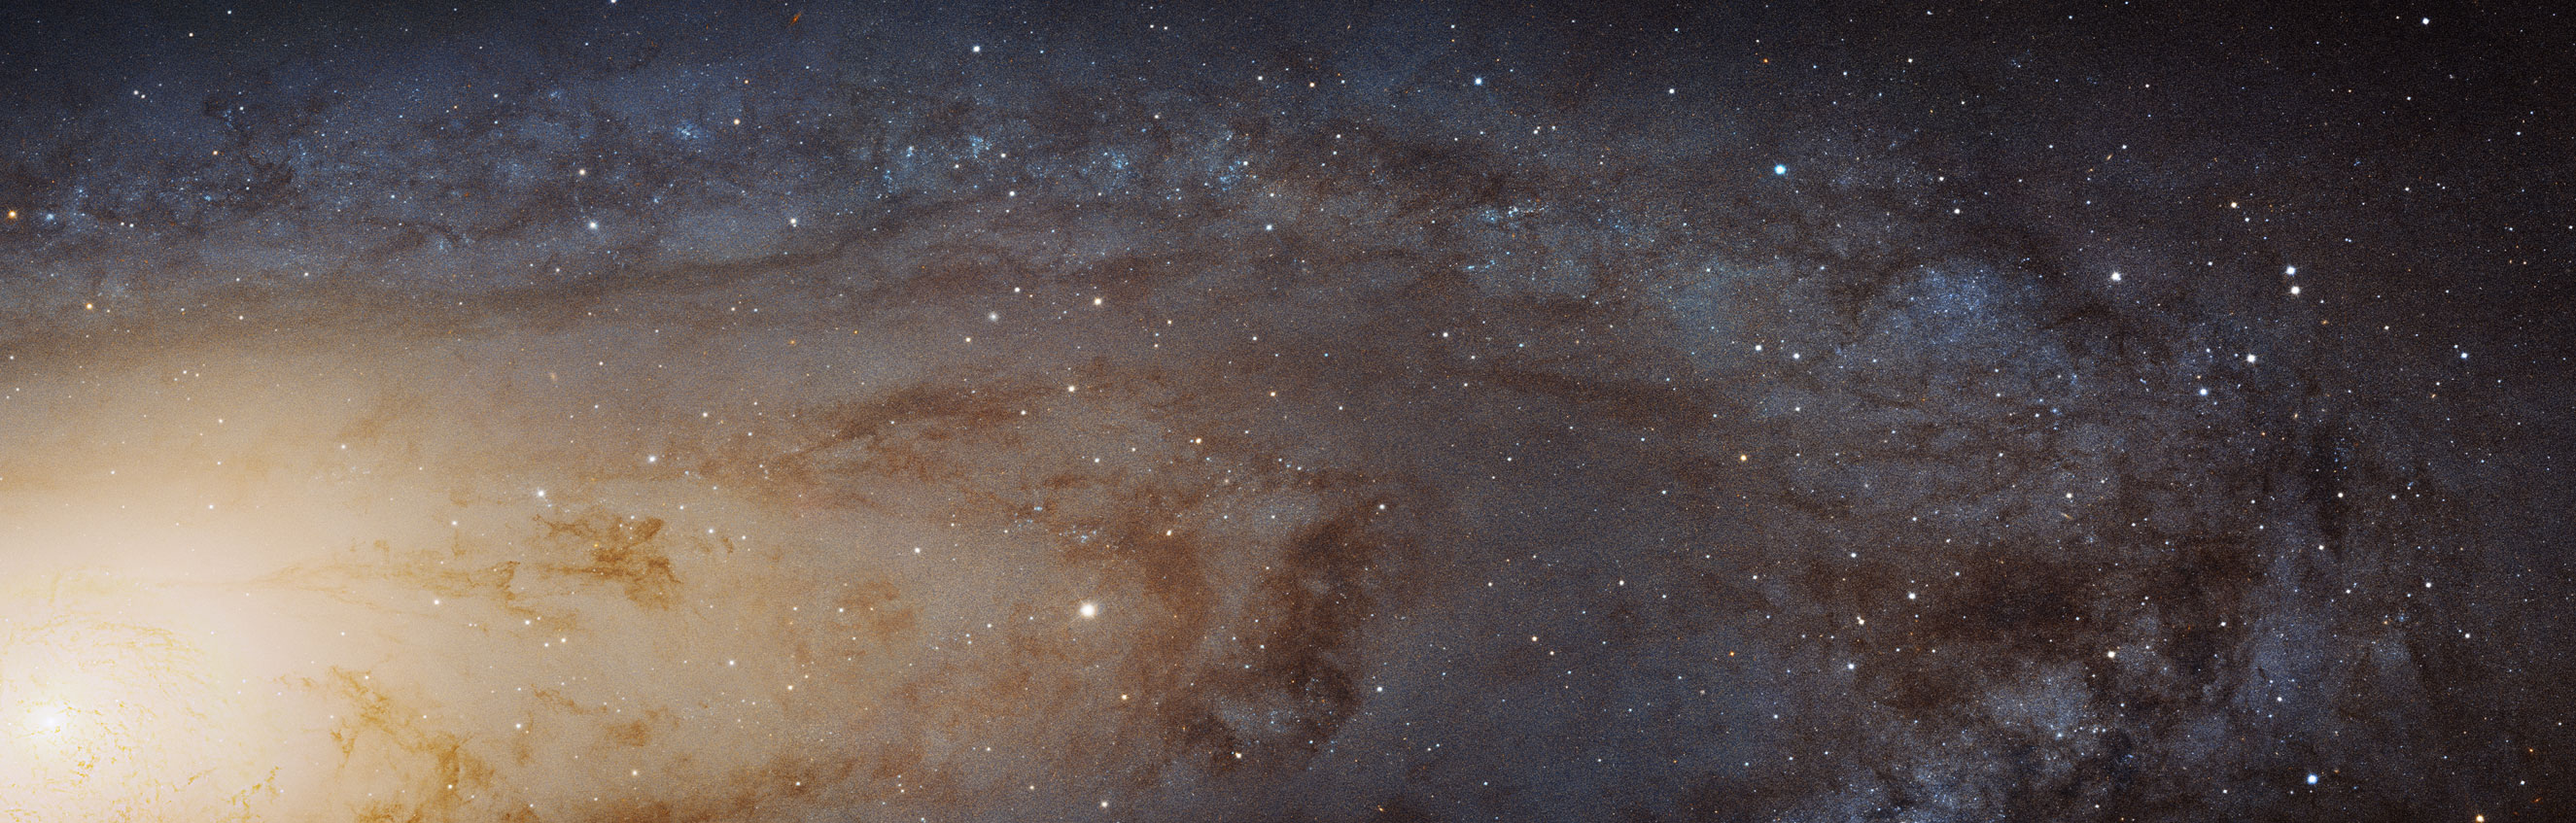 <strong>Andromeda</strong>: This is the largest and sharpest image ever taken of the Andromeda galaxy. It is the biggest Hubble image ever released and shows over 100 million stars and thousands of star clusters embedded in a section of the galaxy's pancake-shaped disc stretching across over 40,000 light-years. <i>Image released on Jan. 5, 2015</i>